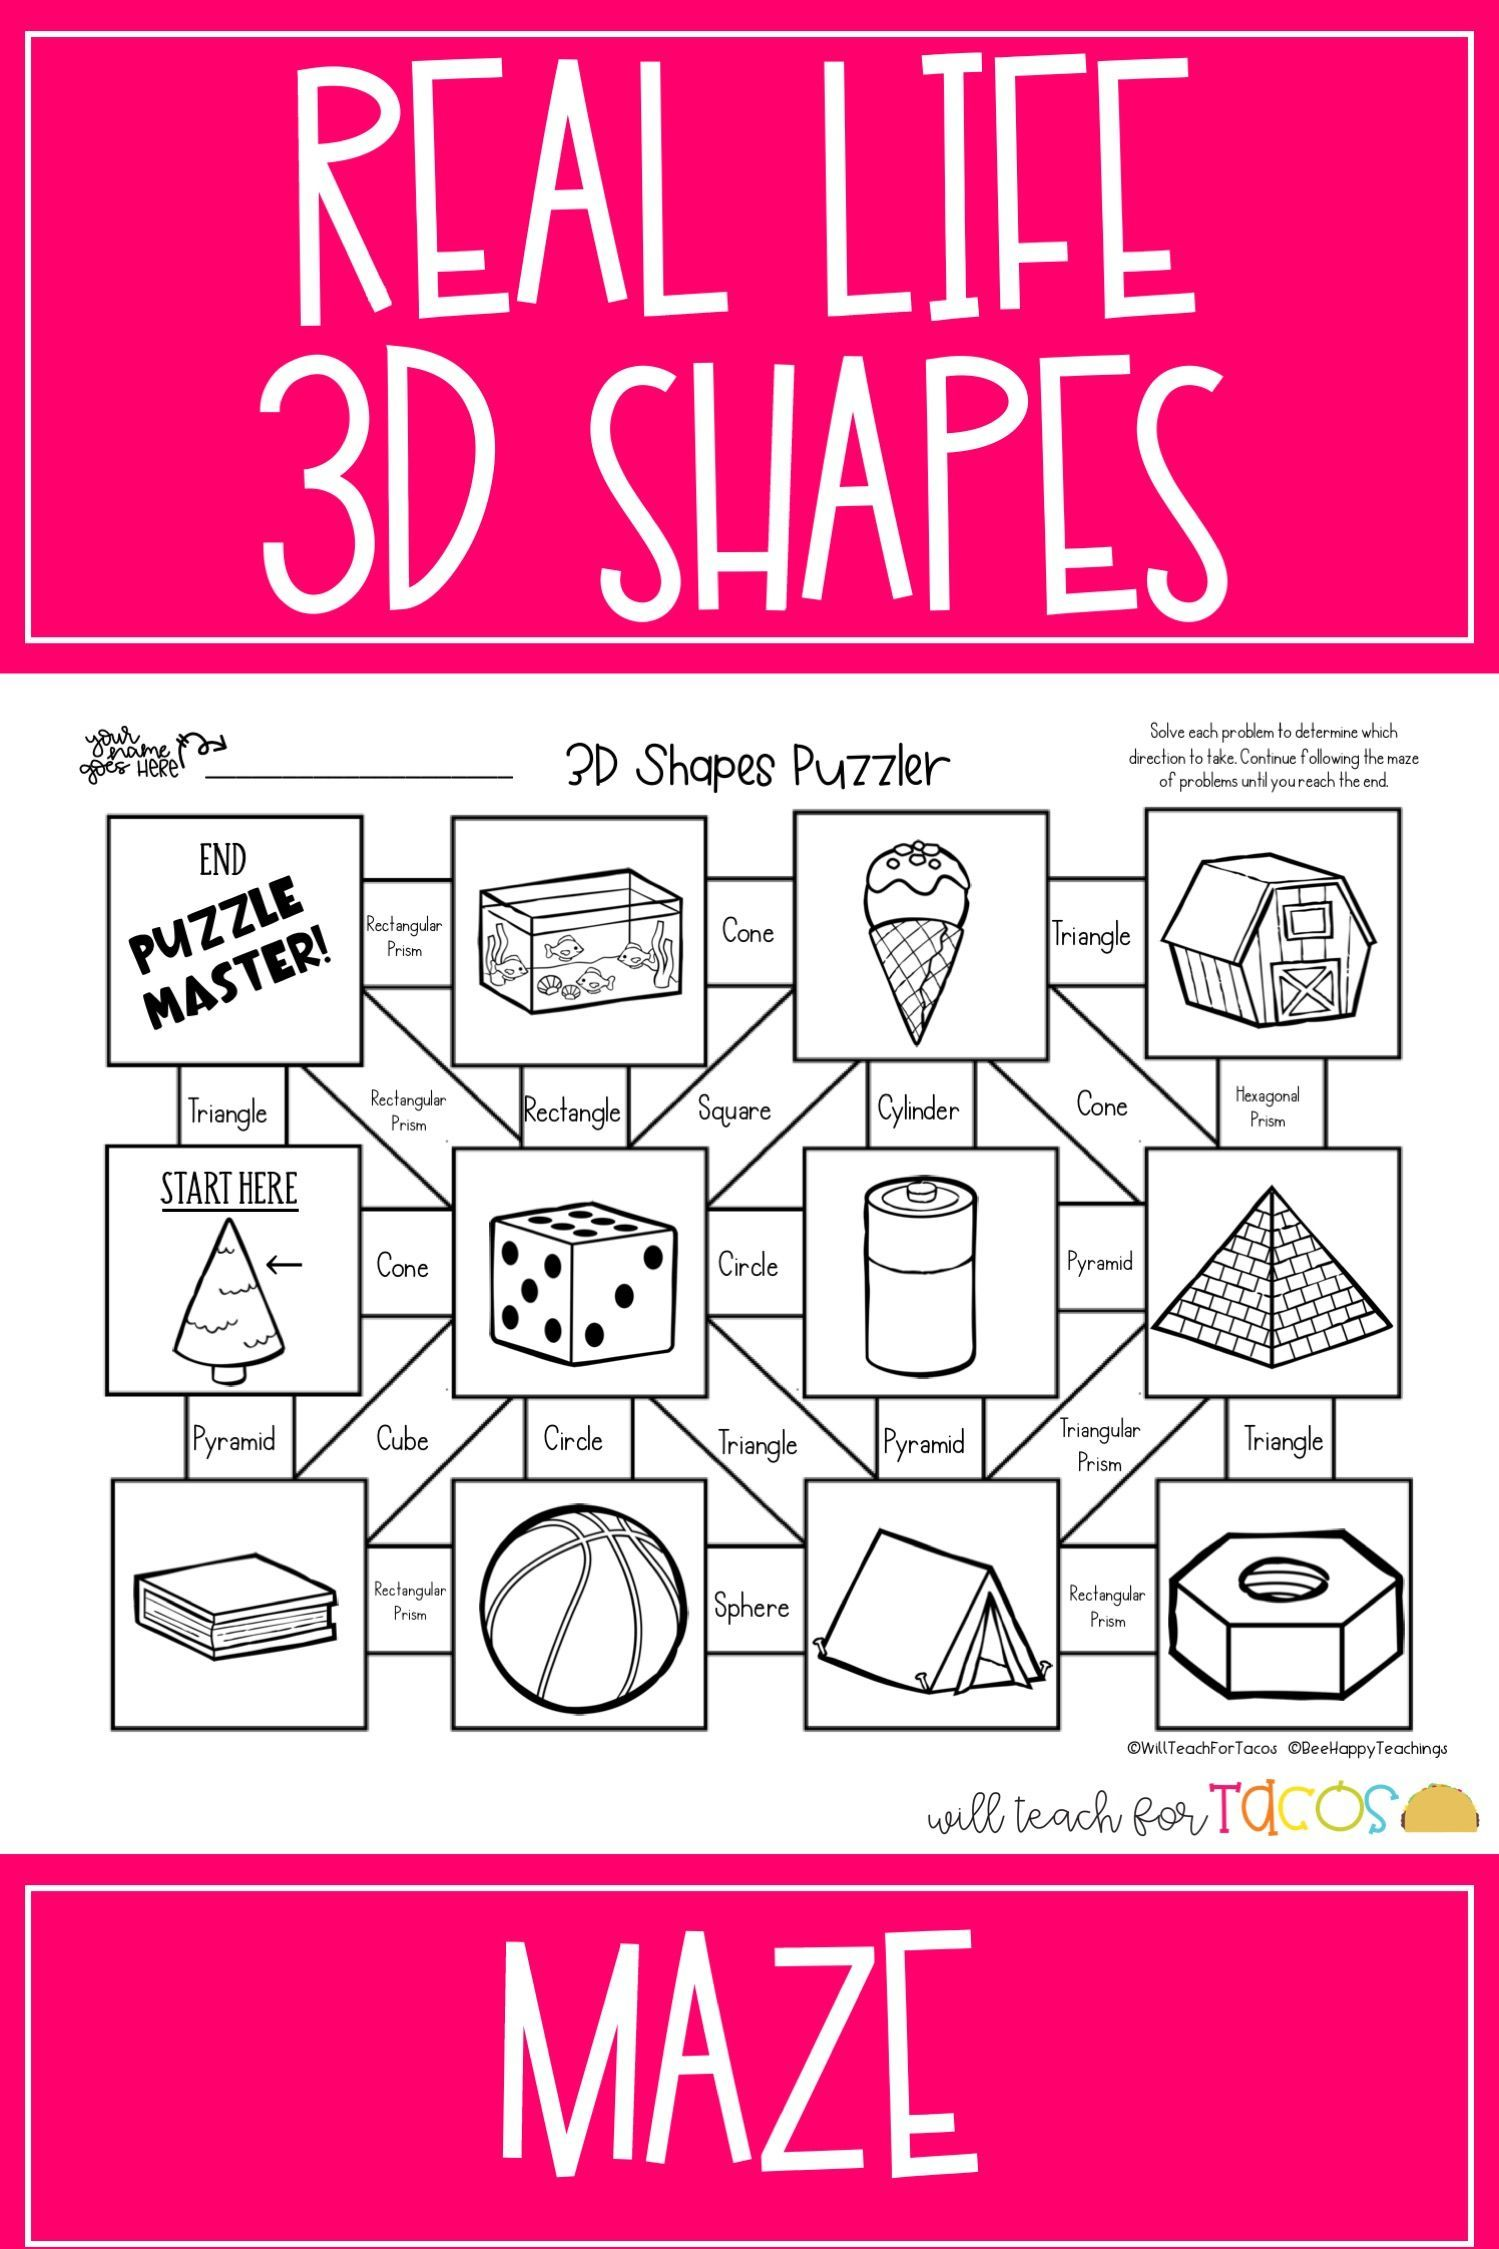 classifying 3D shapes with real life objects; maze for 3rd grade    Elementary math games [ 2249 x 1499 Pixel ]